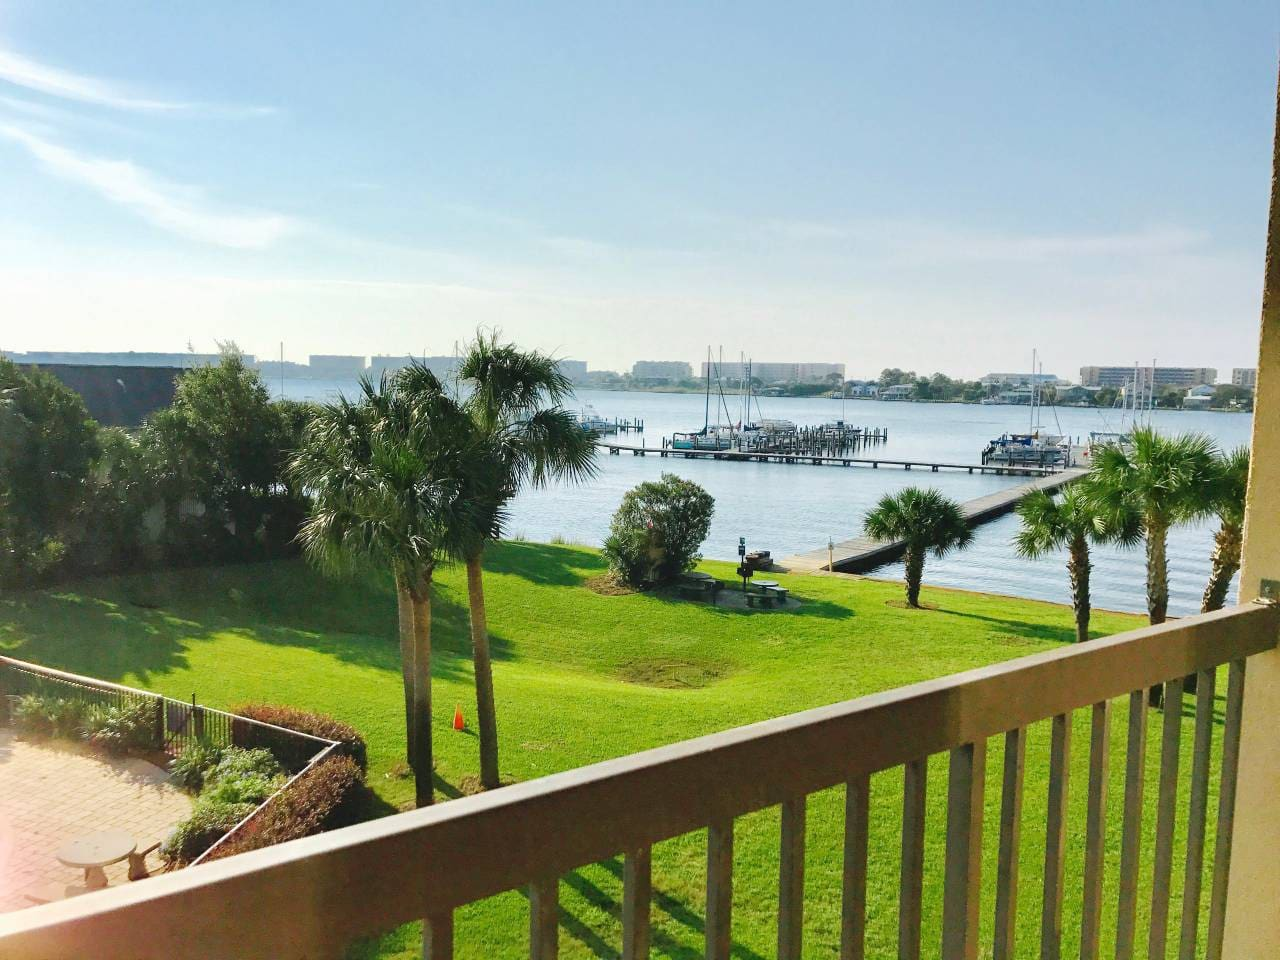 Relax on the tranquil balcony overlooking the beautiful Santa Rosa Sound